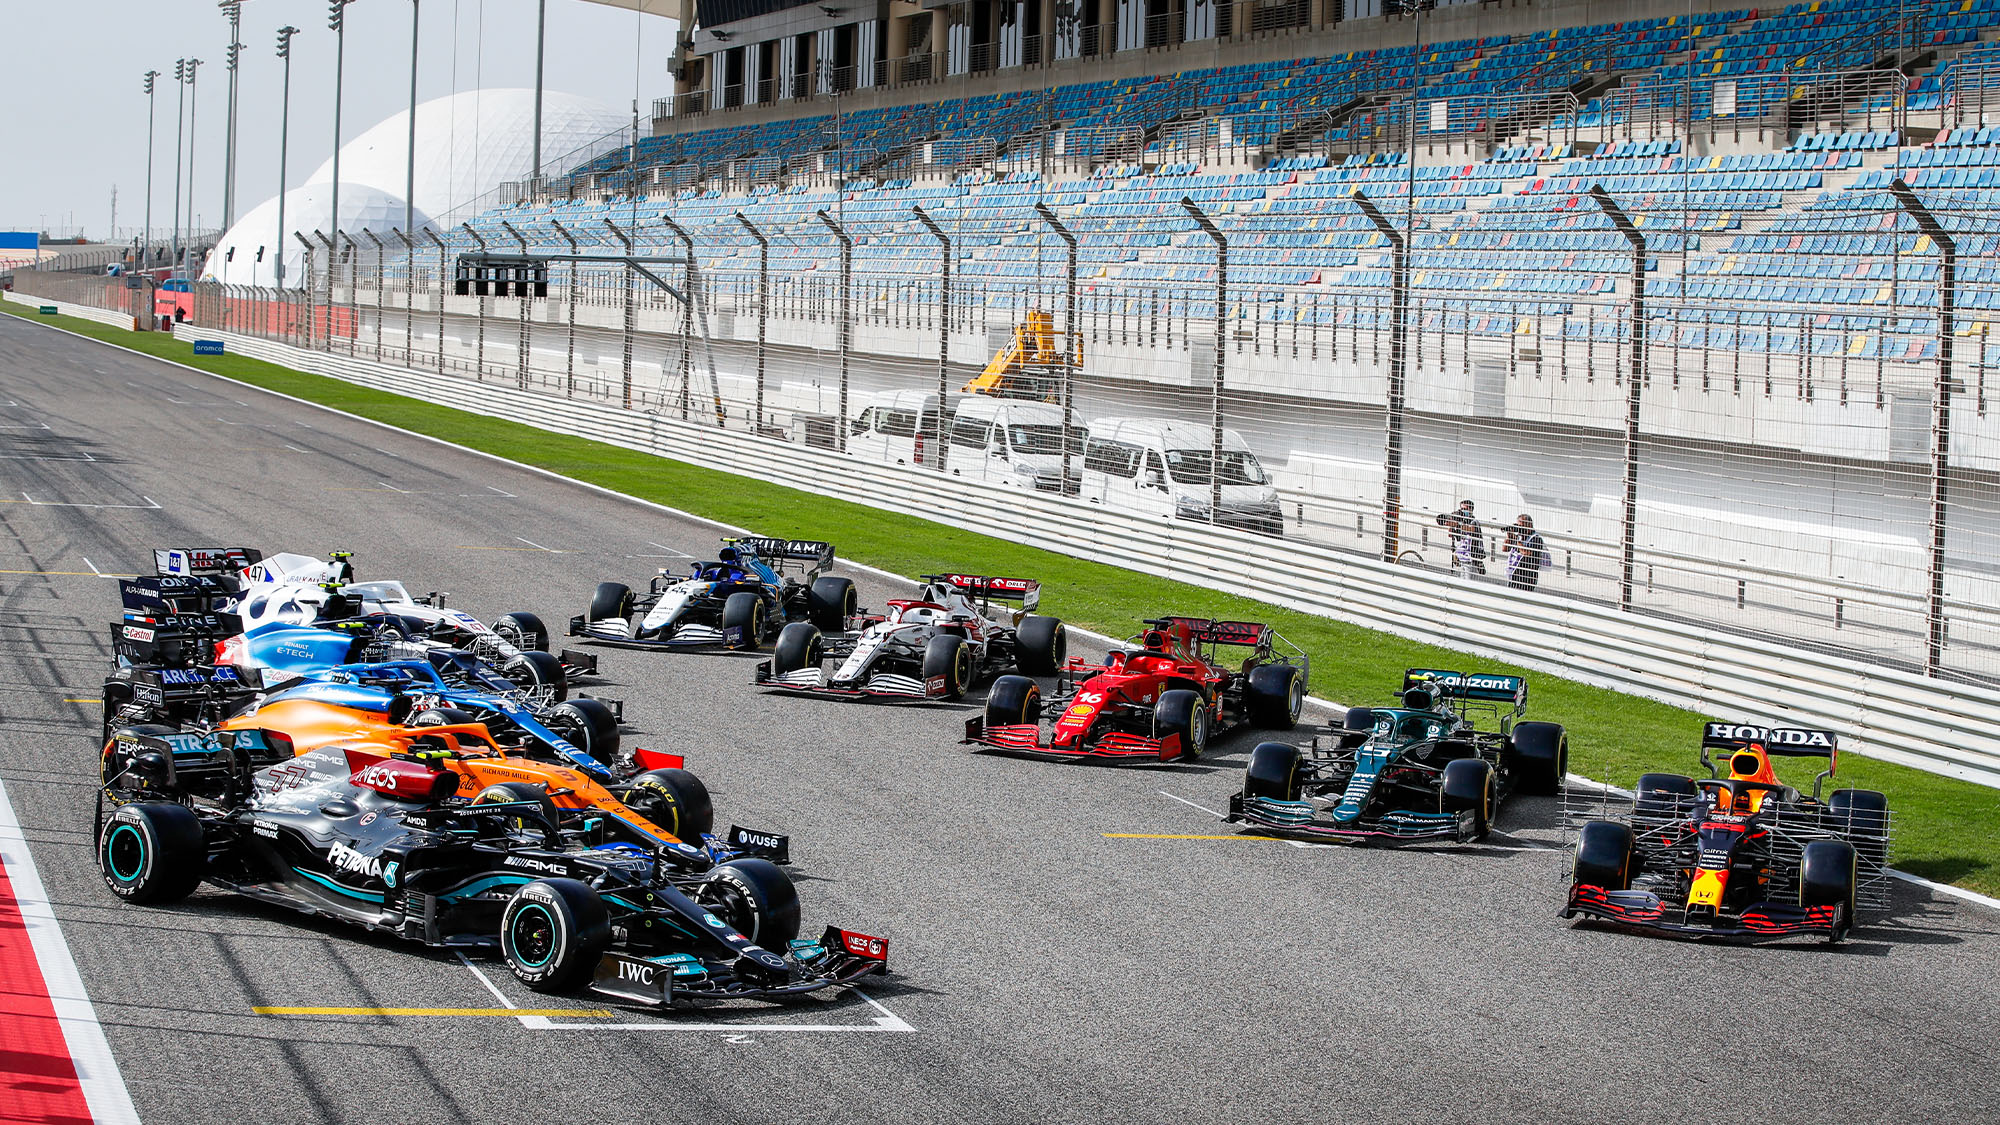 F1 testing 2021, Day 1: Cars revealed in full; Mercedes hits trouble; Red Bull on top